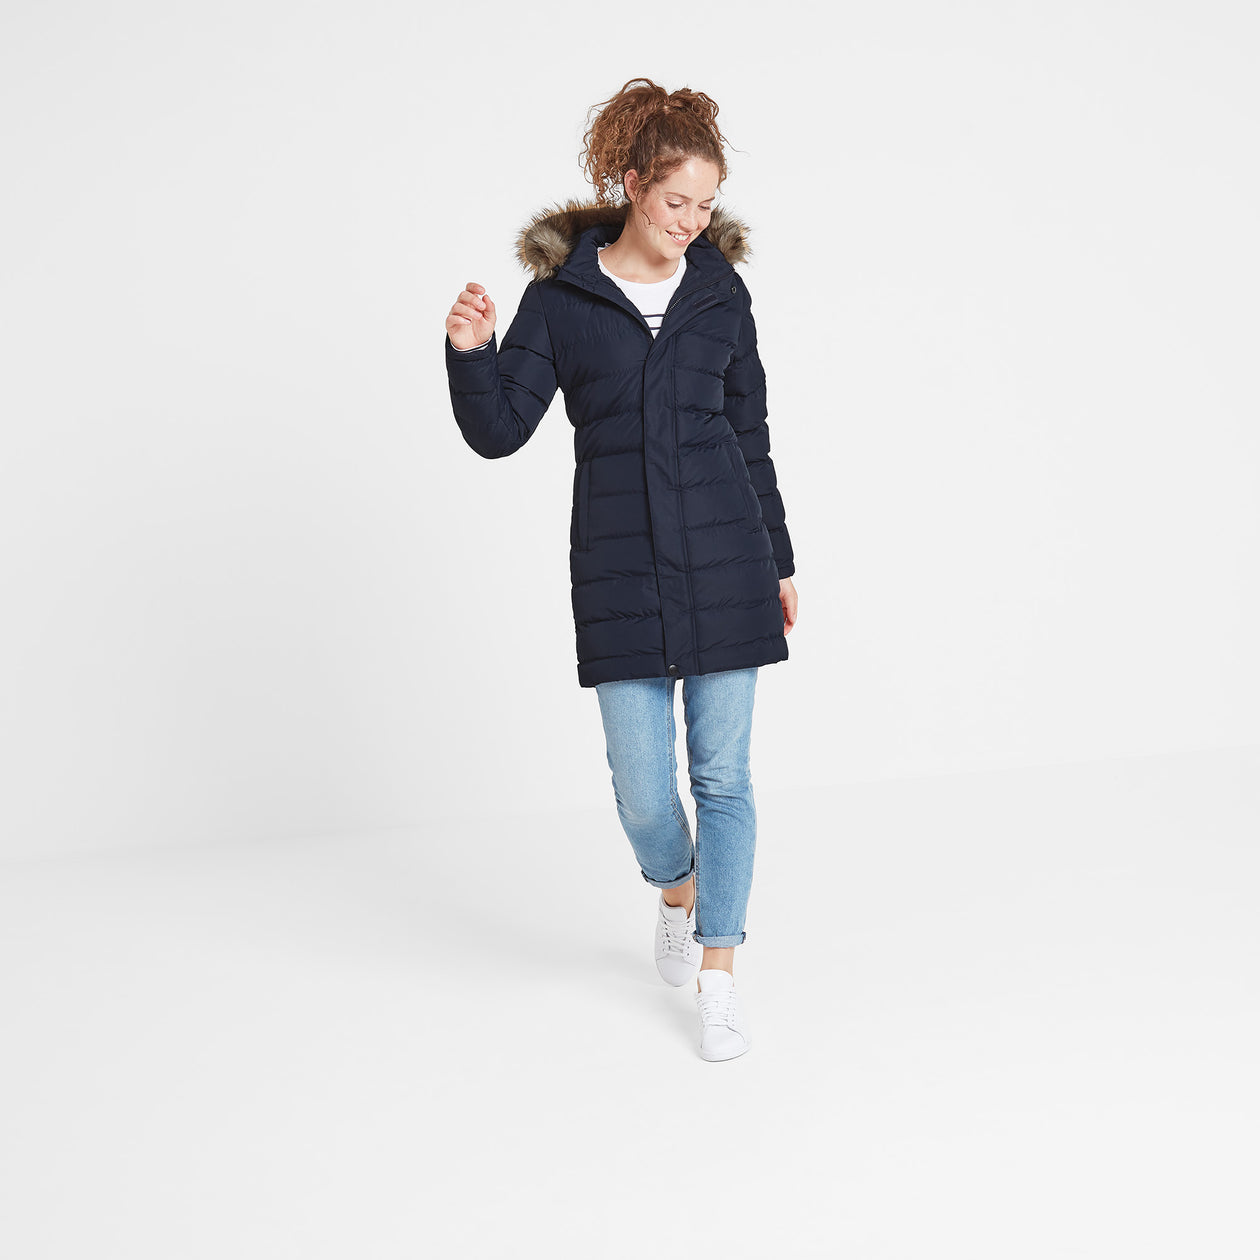 Yeadon Womens Long Insulated Jacket - Navy image 4